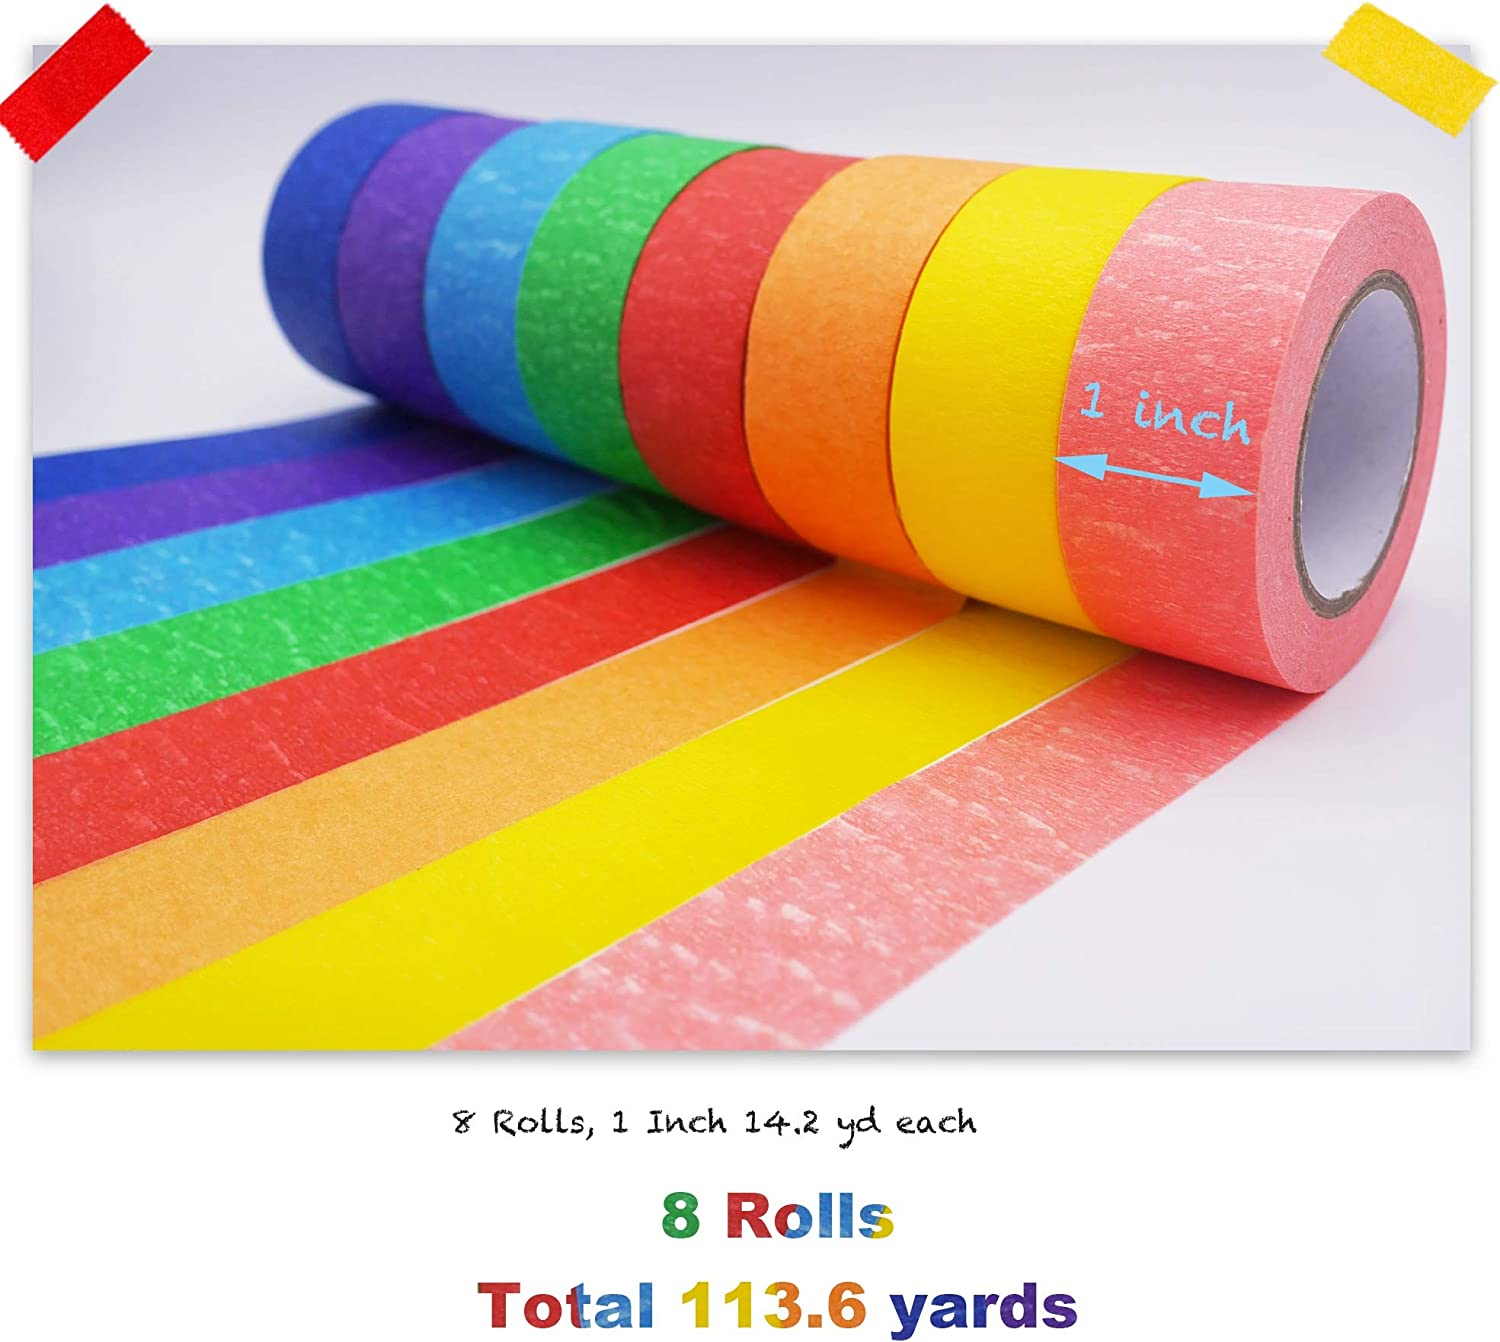 Painting Tapes for Crafts DIY Decorative Coding and Labellings and More 8 Different Colors Masking Tape Fun Supplies Kit for Kids and Adults 8 Rolls, 1 Inch 14.22 yd Each Colored Masking Tape